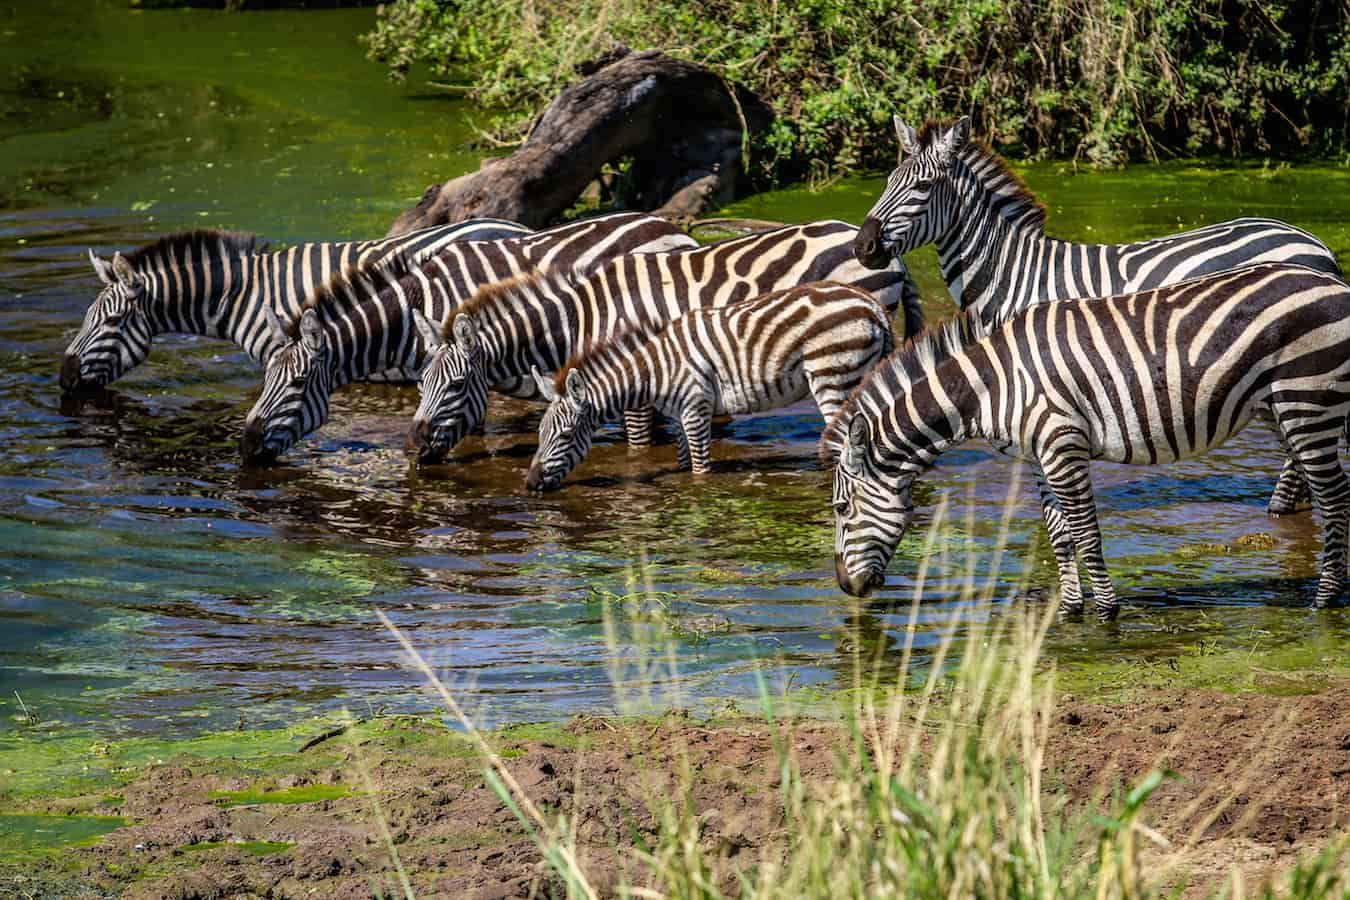 Baby Zebra in Serengeti National Park, Tanzania